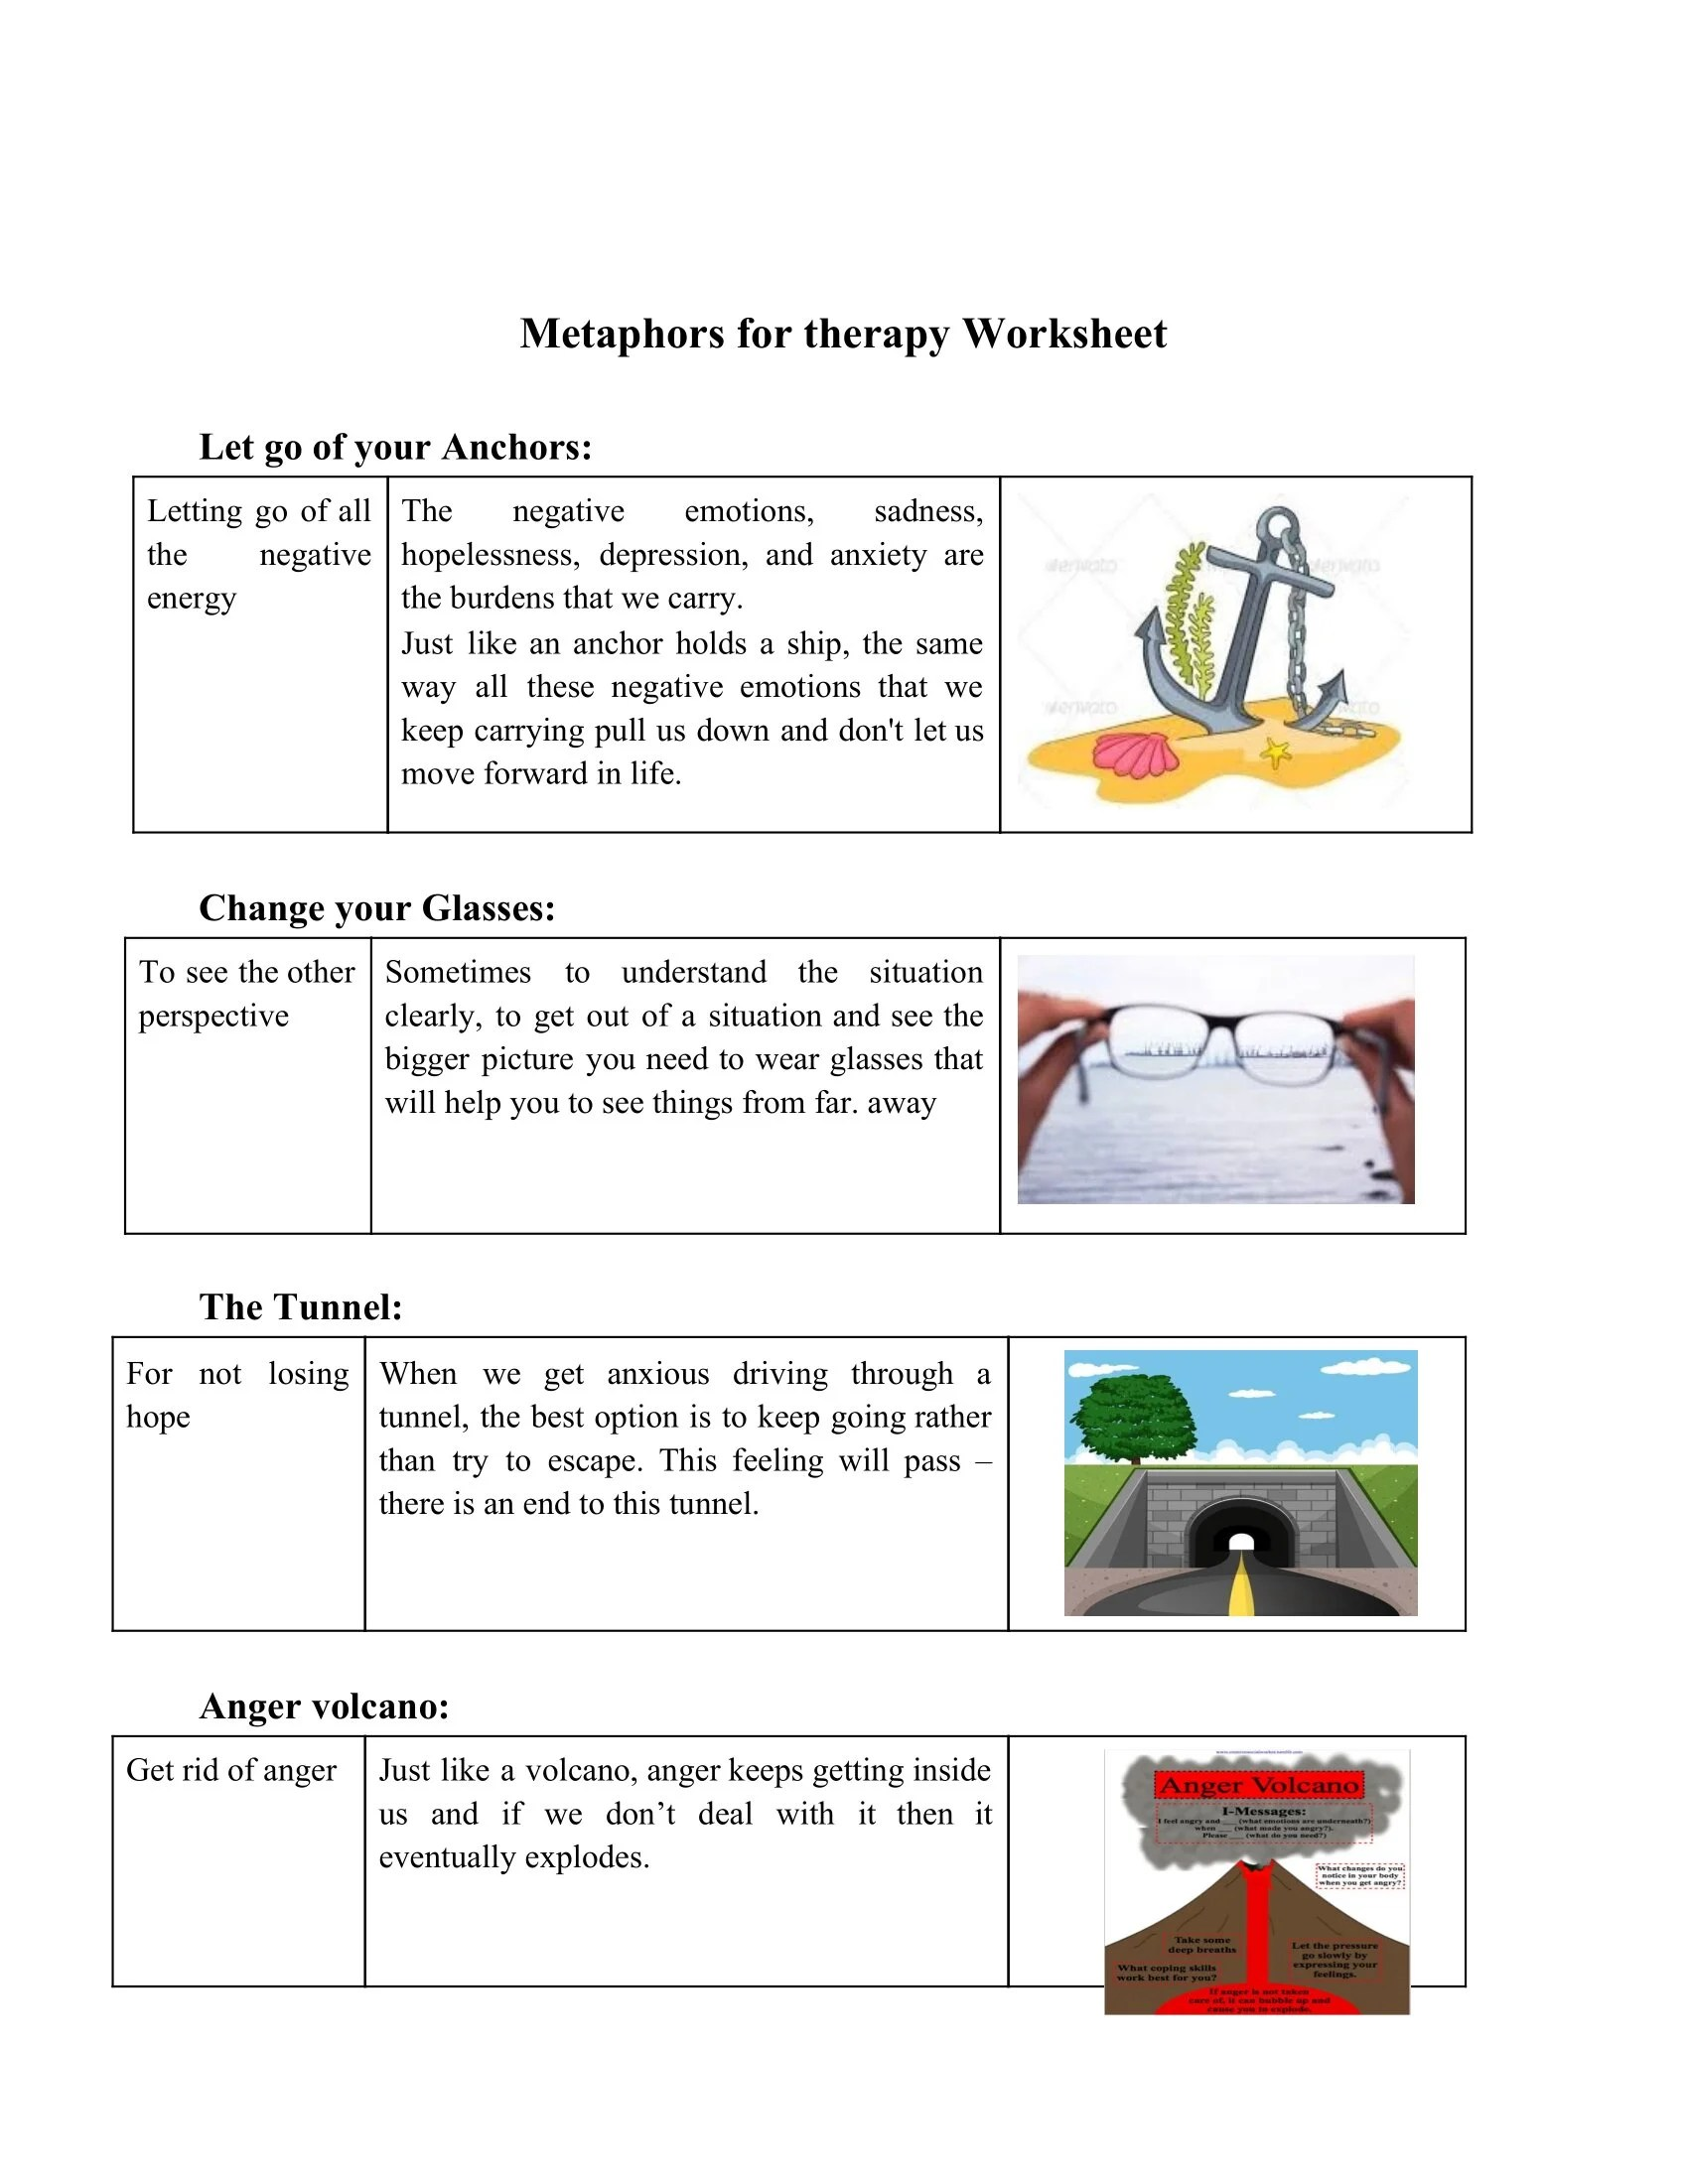 Metaphors For Therapy Worksheet